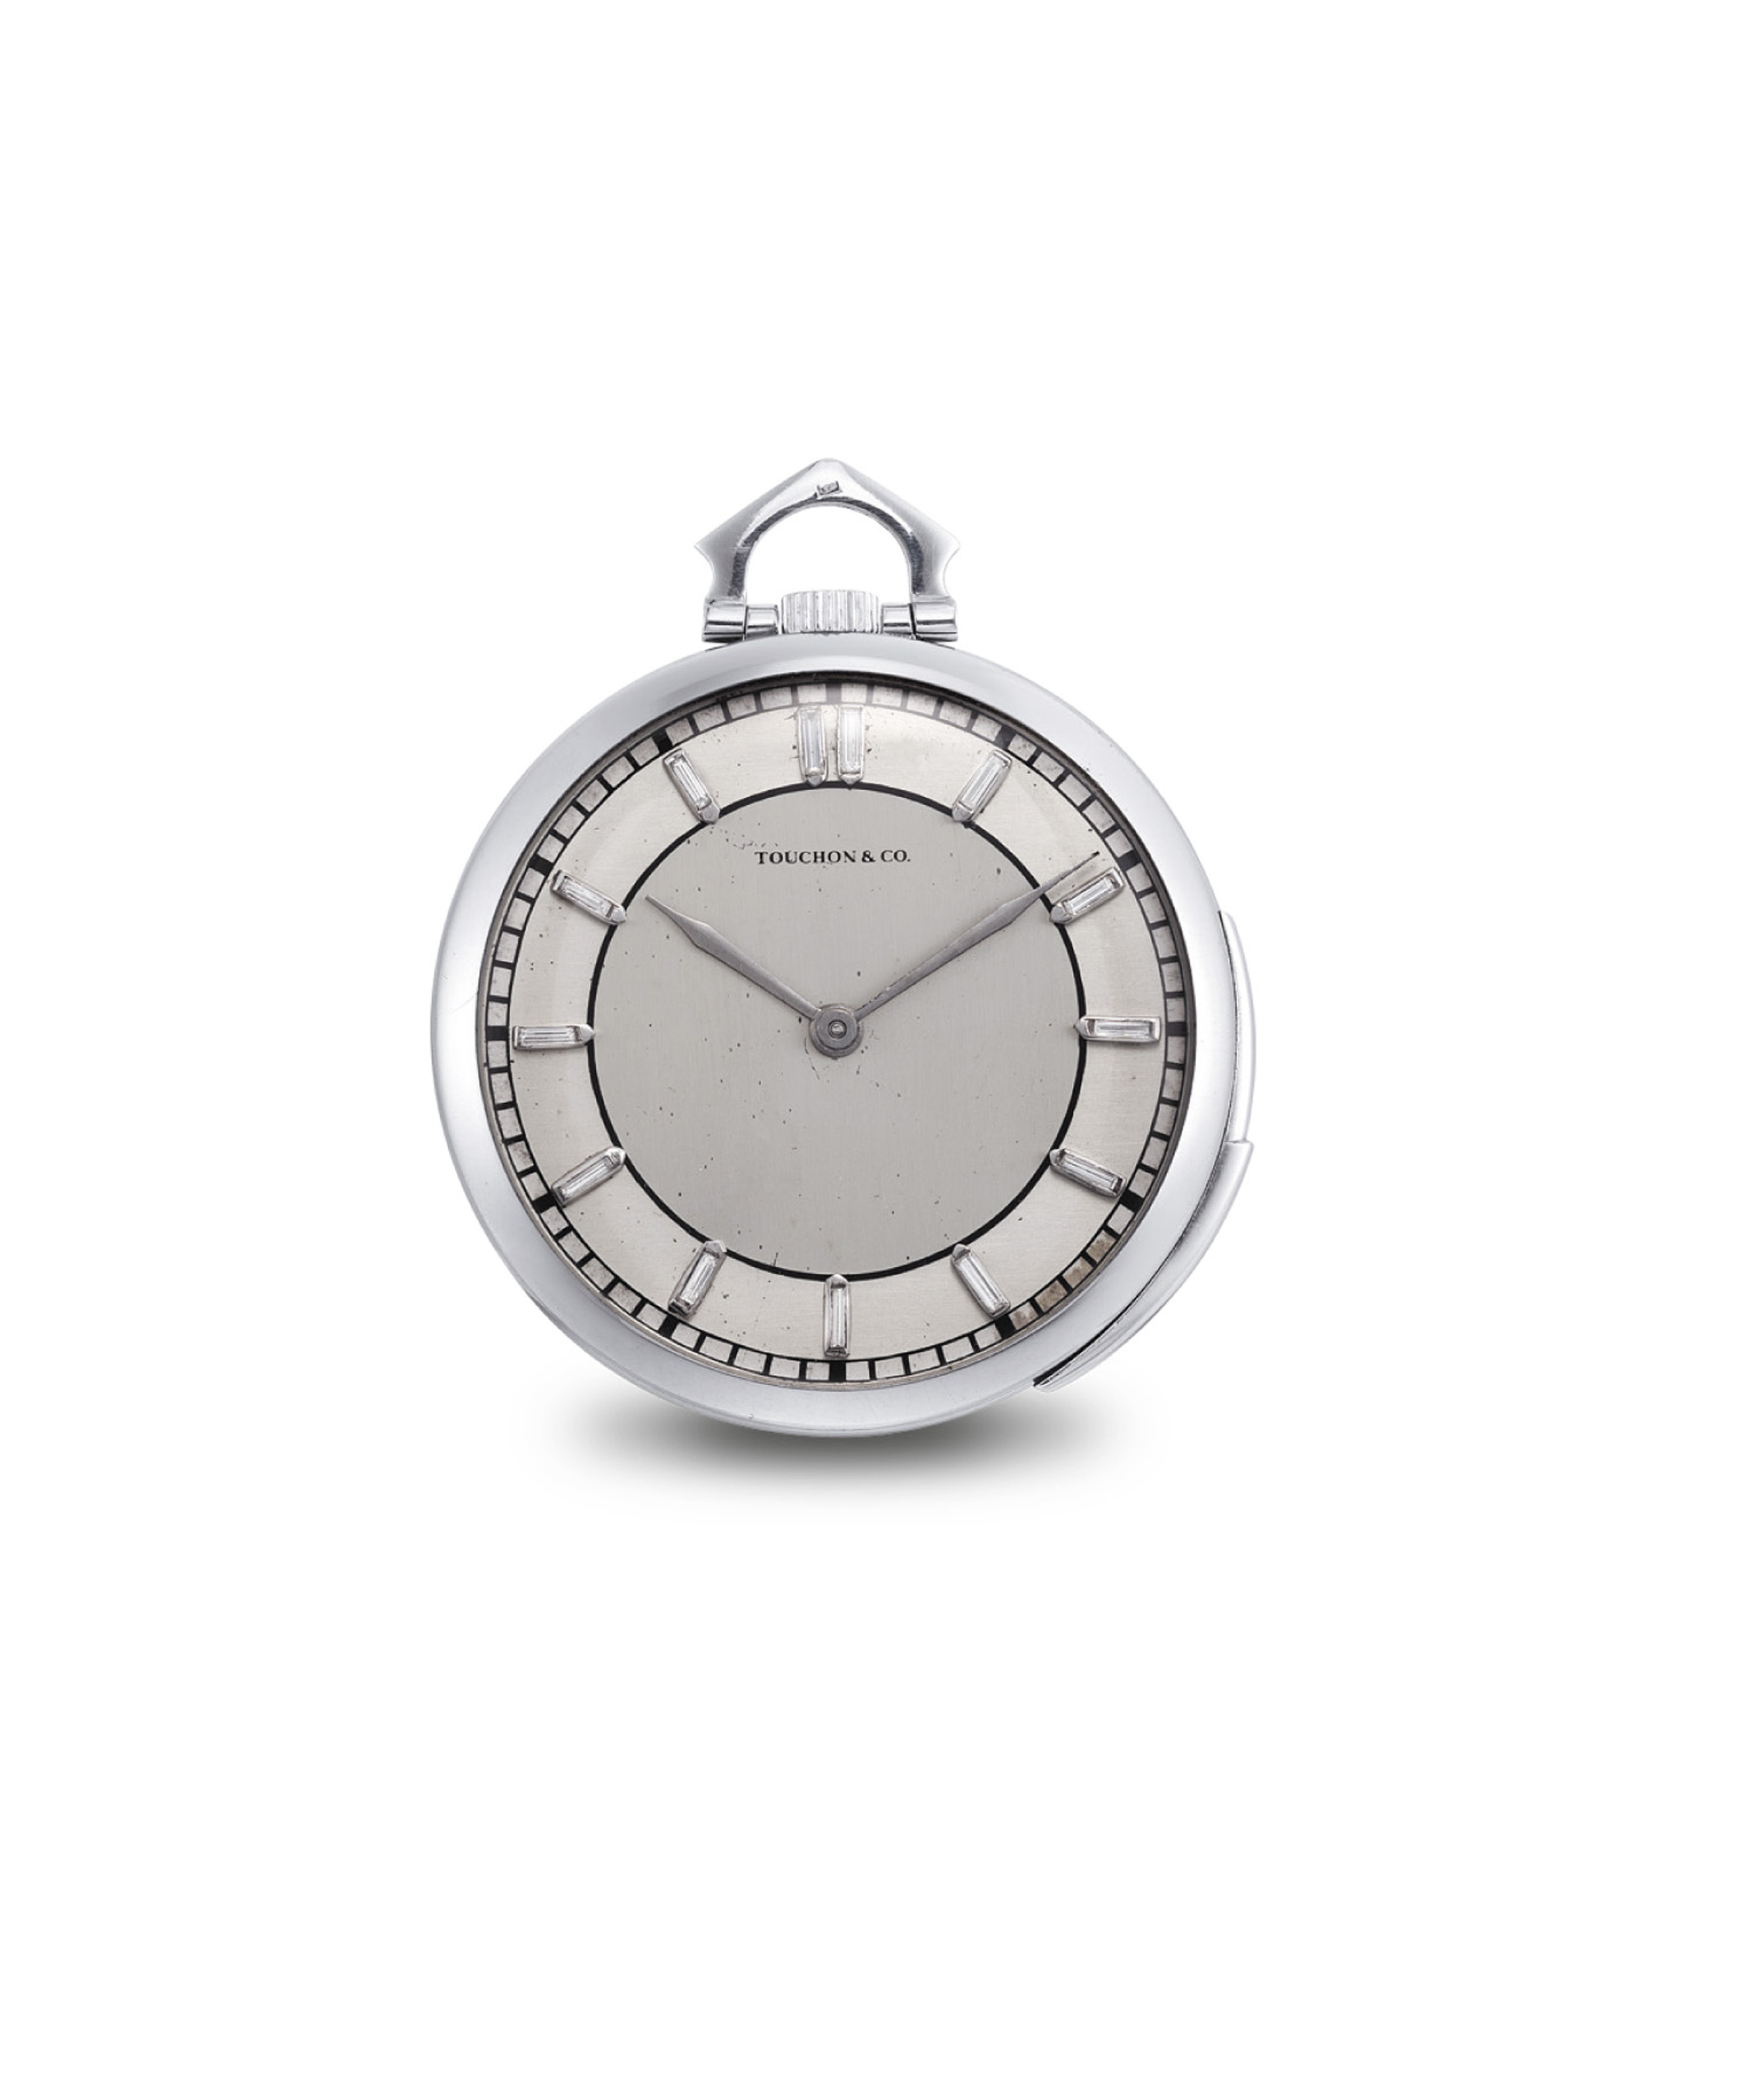 TOUCHON & CO. A FINE PLATINUM AND DIAMOND-SET MINUTE REPEATING OPENFACE KEYLESS LEVER DRESS WATCH WITH TWO-TONE SILVERED DIAL